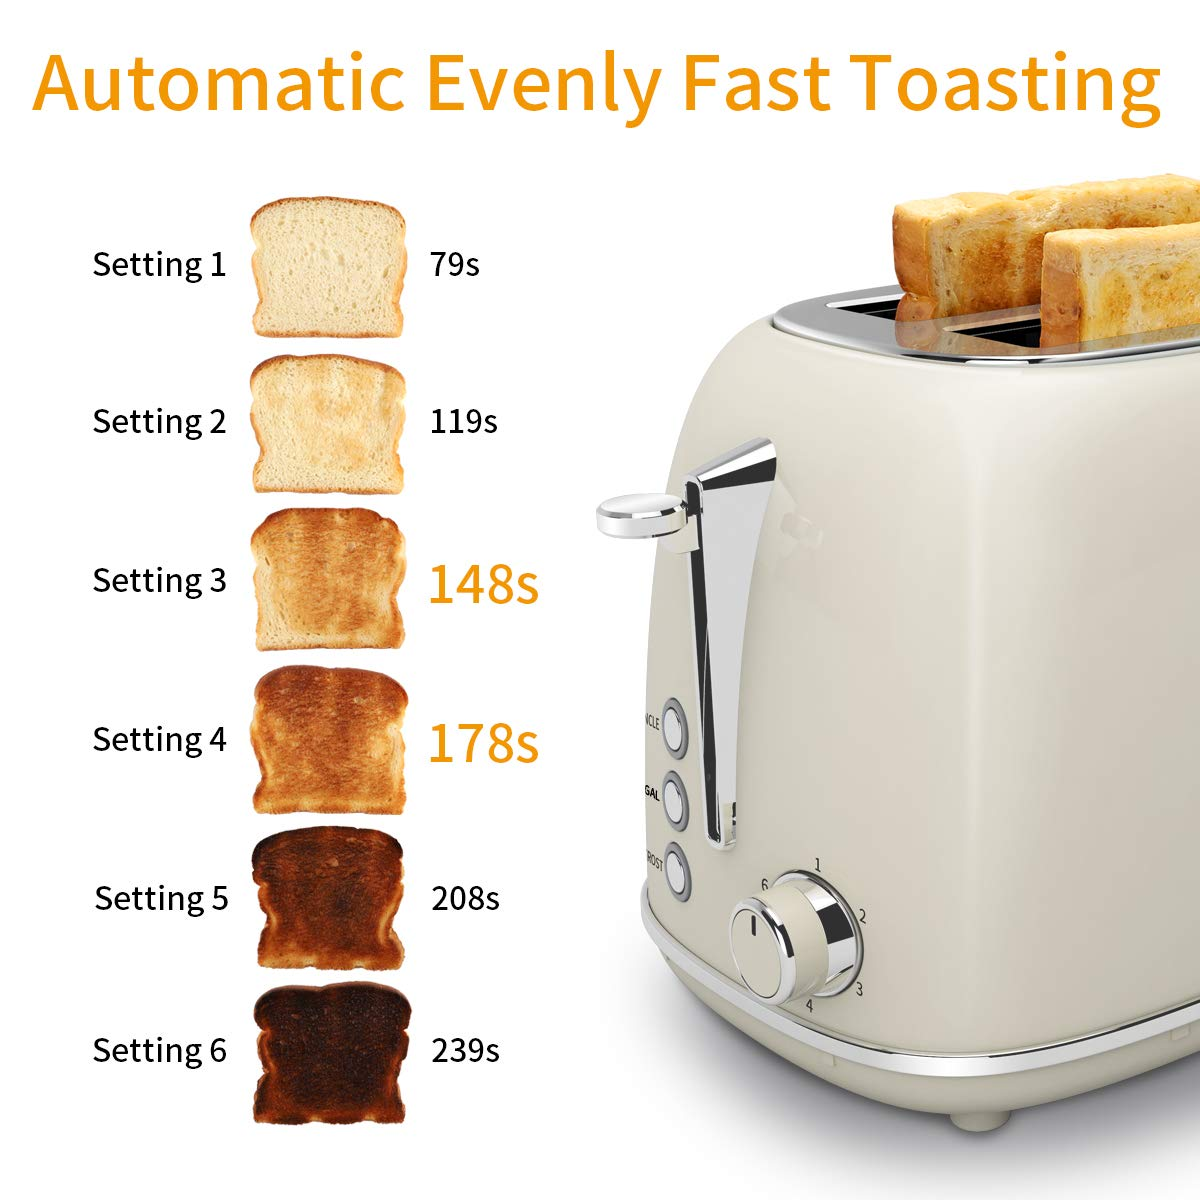 2 Slice Toaster, Compact Bread Toasters with 6 Browning Settings, 1.5 In Extra Wide Slots, Stainless Steel Housing, Bagel Defrost Cancel Function, Removable Crumb Tray, 825W for Breakfast Bread -Beige